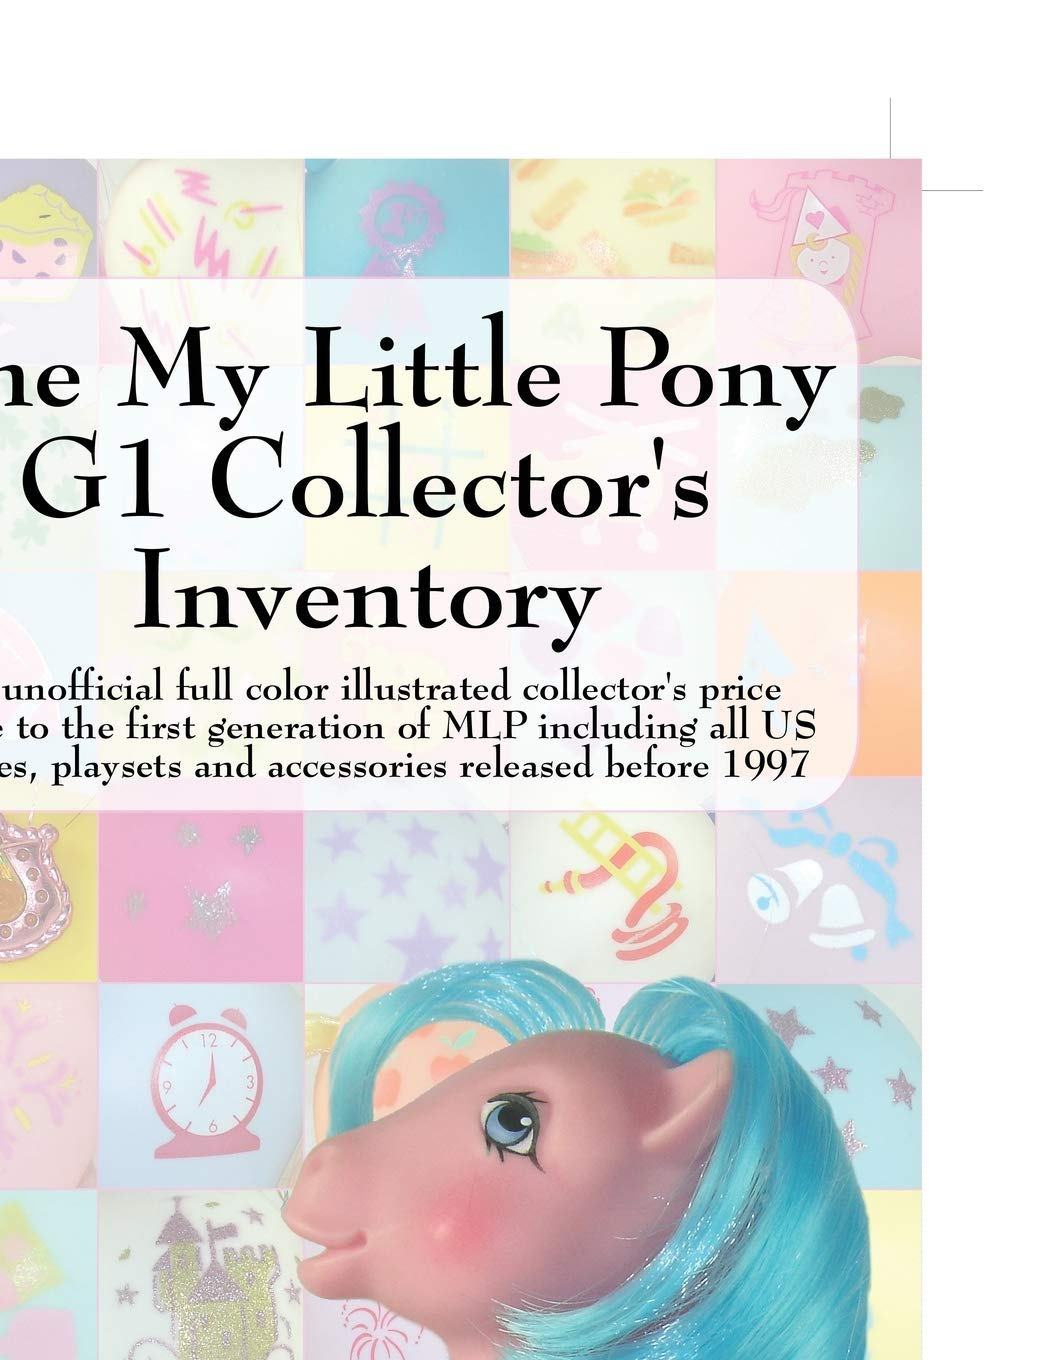 The My Little Pony G1 Collector's Inventory  An Unofficial Full Color Illustrated Collector's Price Guide To The First Generation Of Mlp Including All